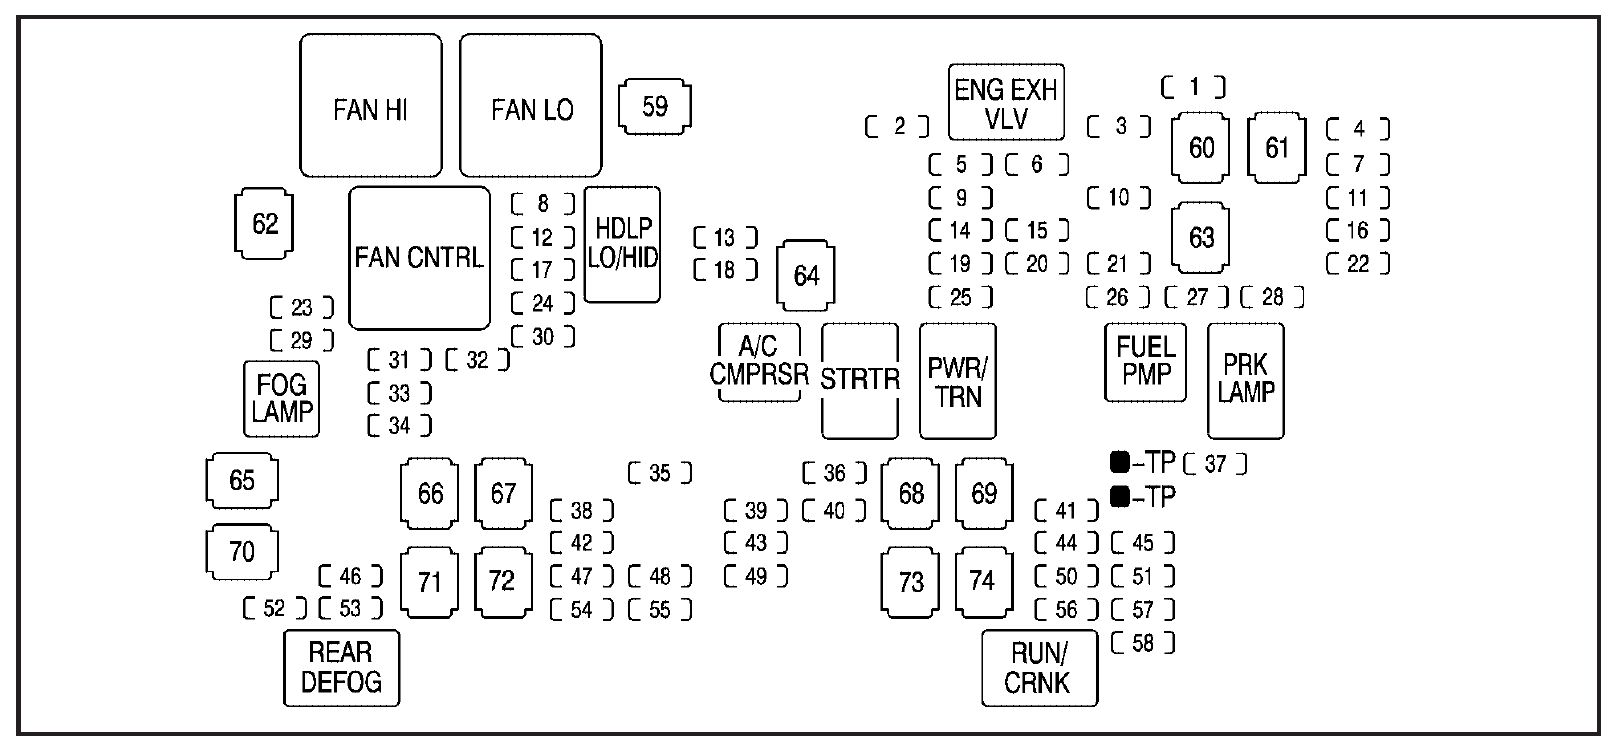 2007 acadia engine diagram 2007 gmc acadia fuse box diagram 2007 image wiring gmc sierra 2007 fuse box diagram auto